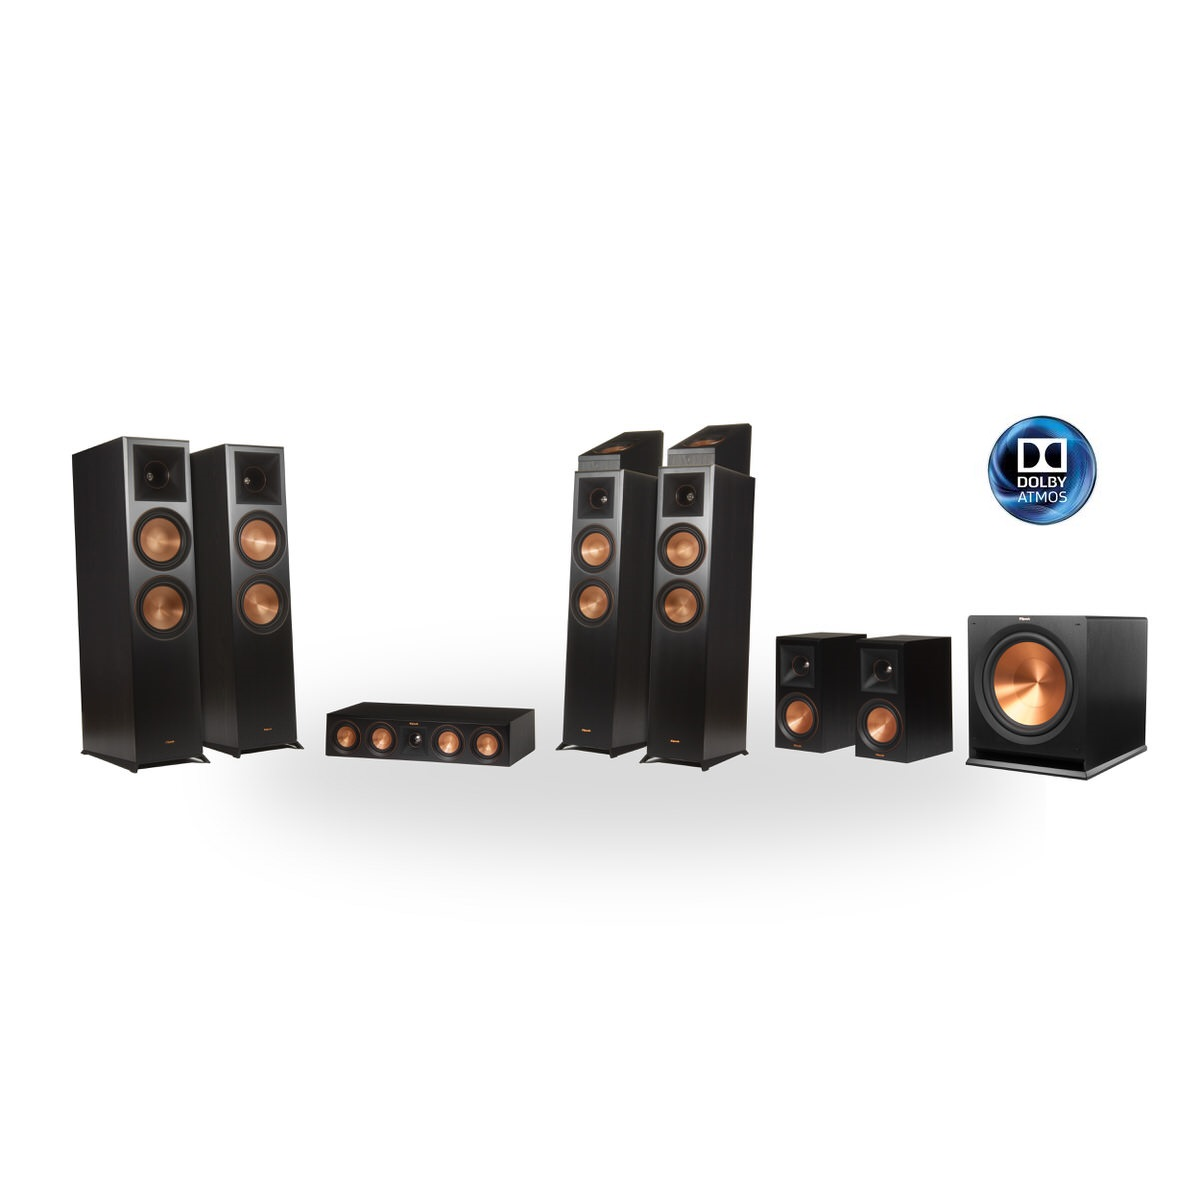 Klipsch Reference Premier RP-8060FA 7.1.4 Dolby Atmos Home Theater System (Black)